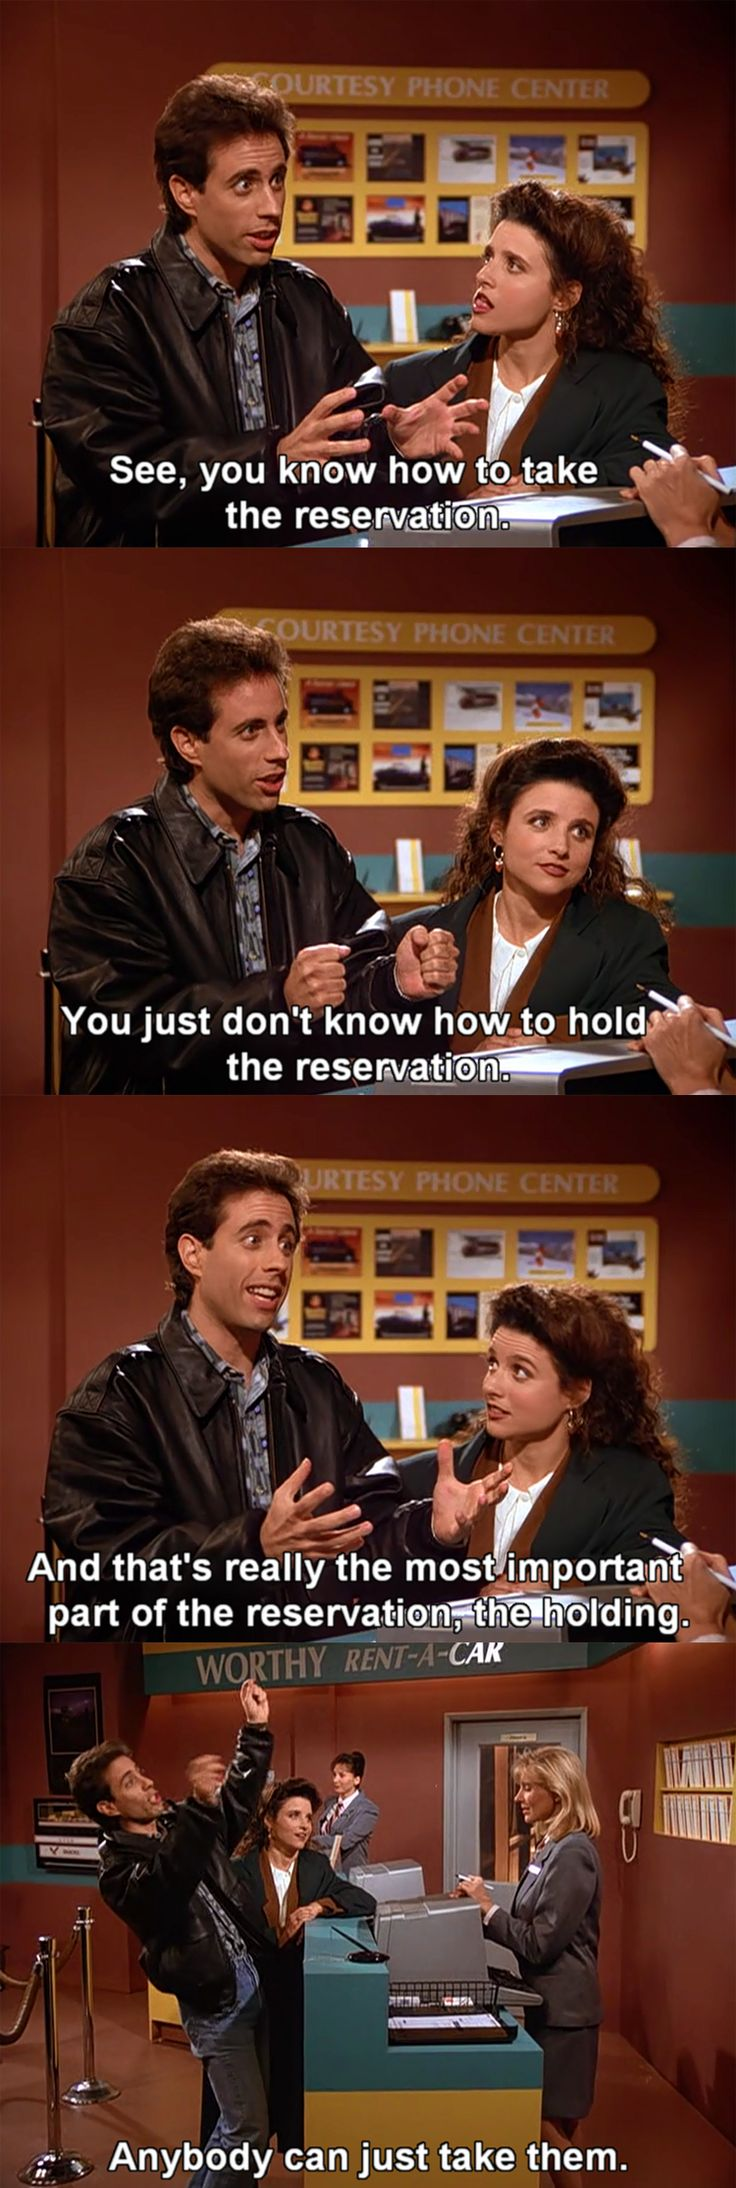 Jerry Seinfeld - Reservation OMG, my family has quoted this on a number of…